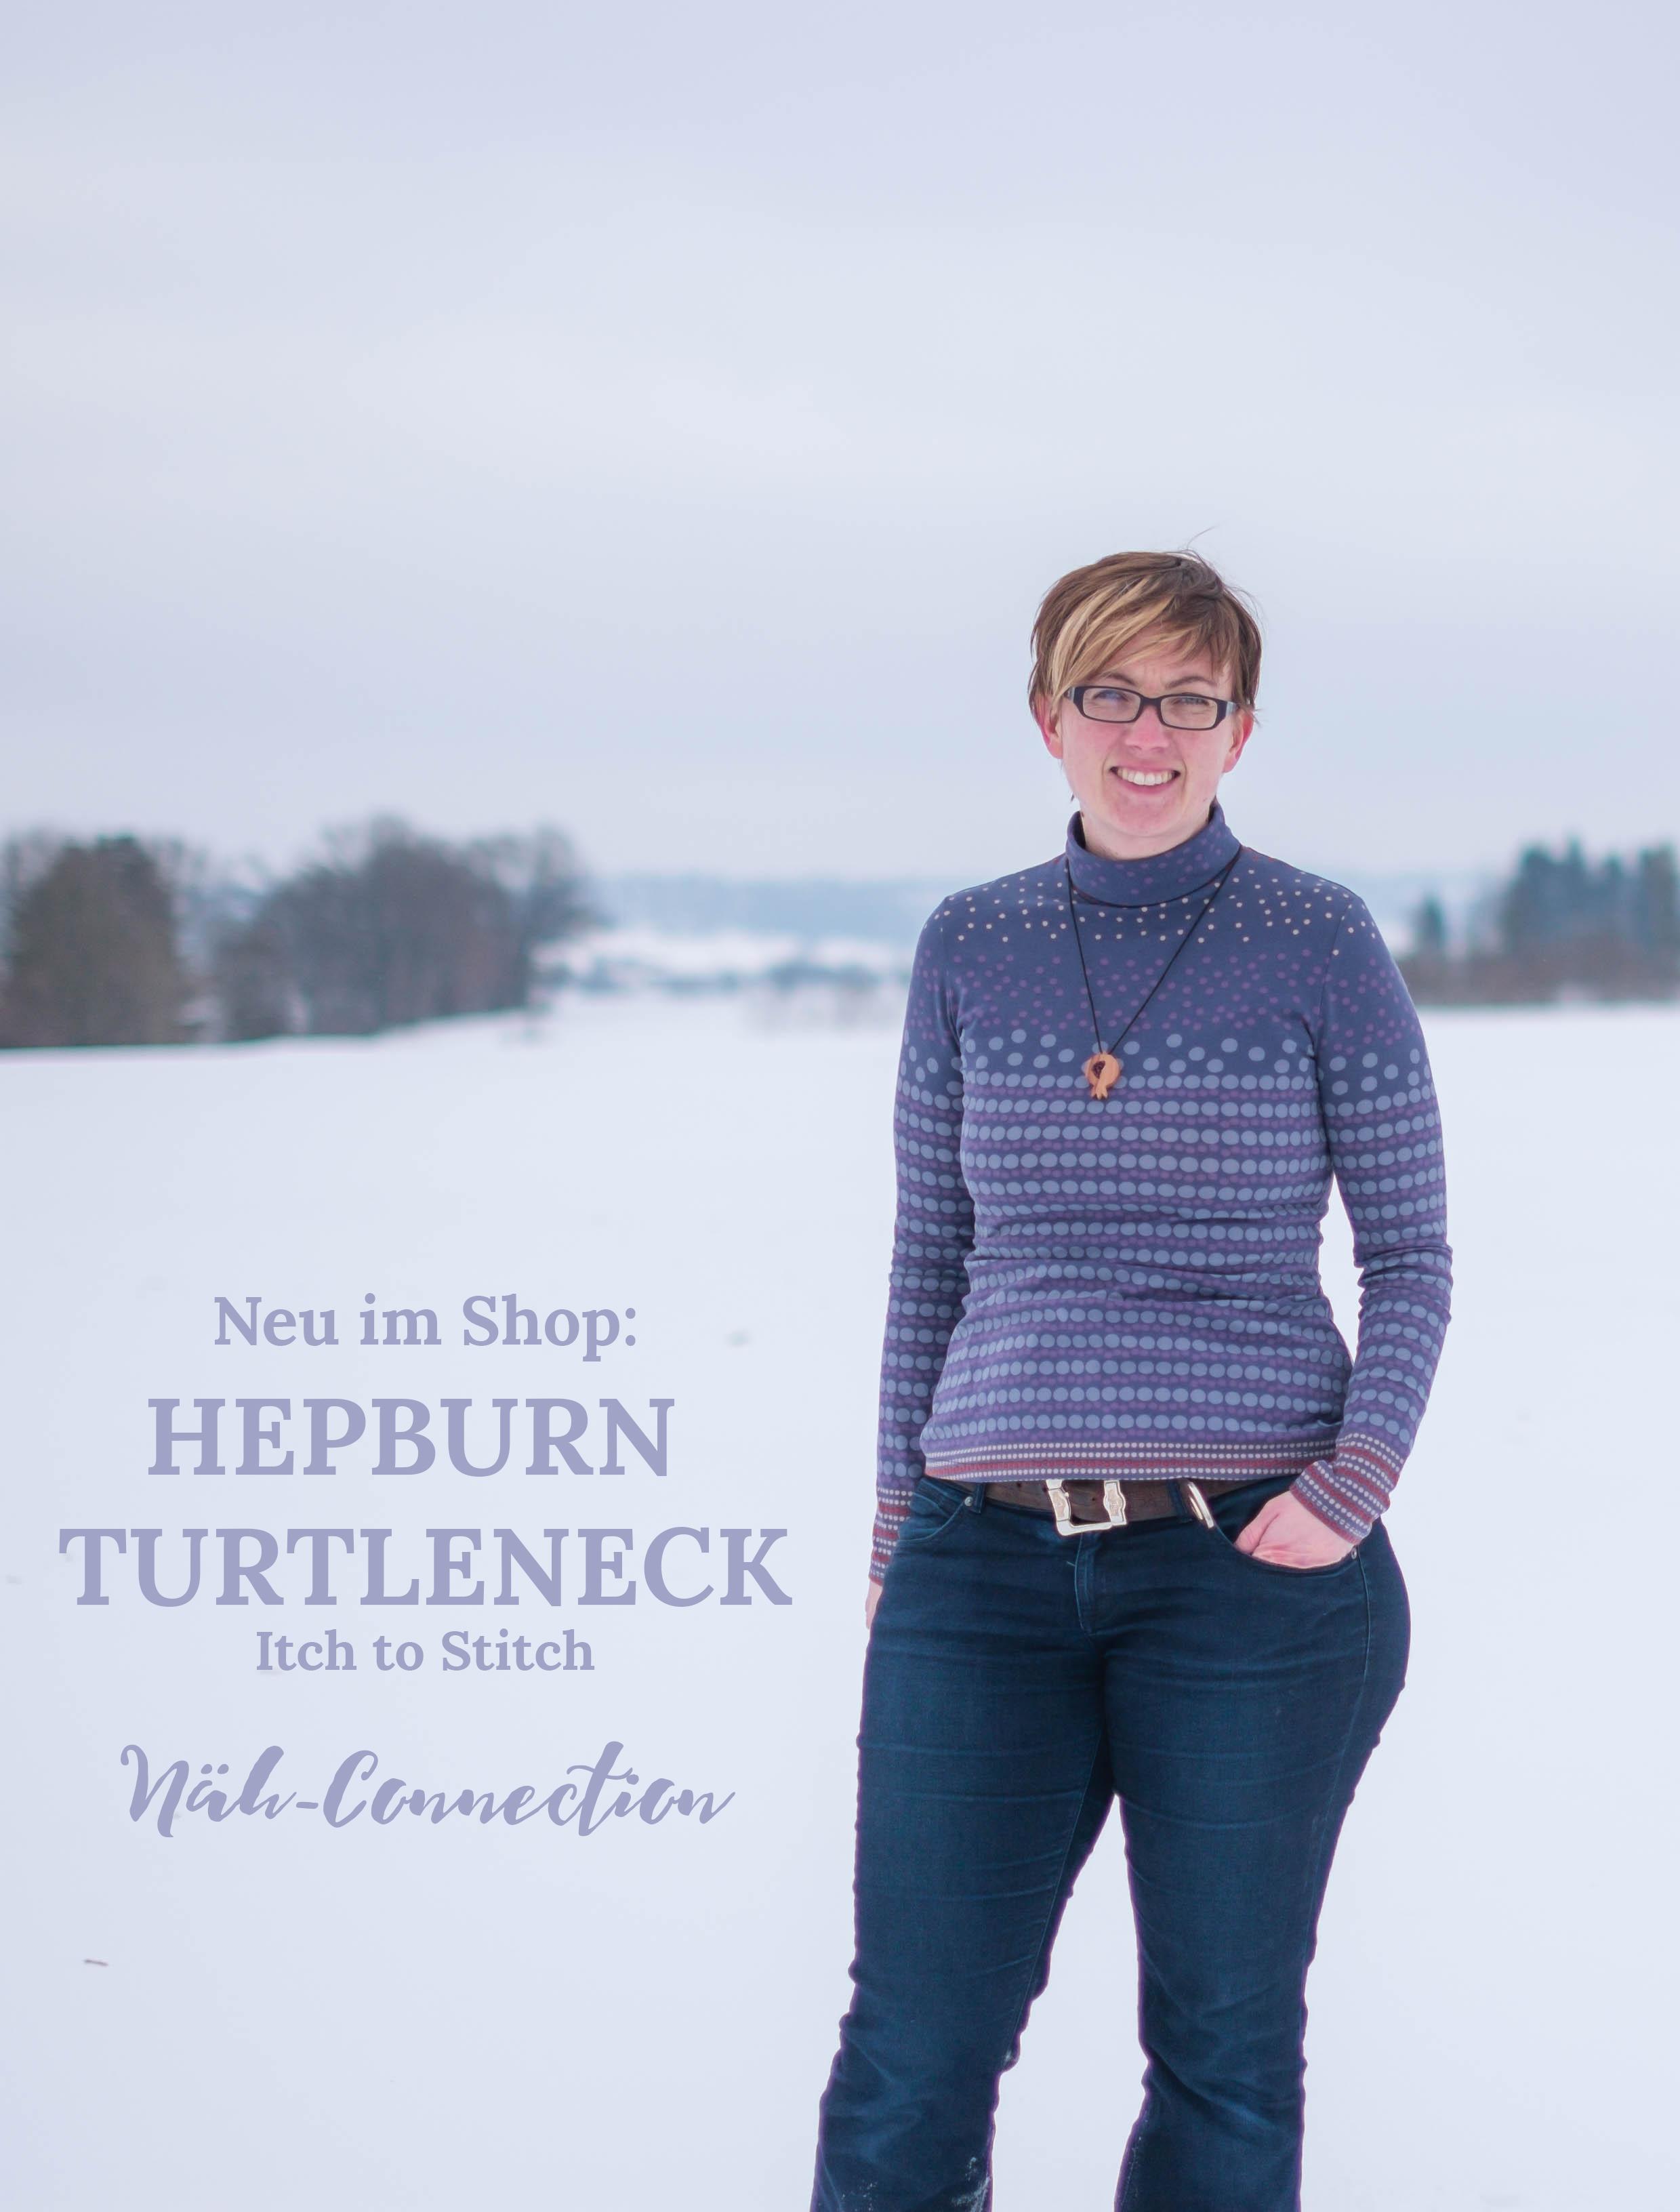 Näh-Connection: Hepburn Turtleneck von Itch to Stitch - auf Deutsch neu im Näh-Connection Shop